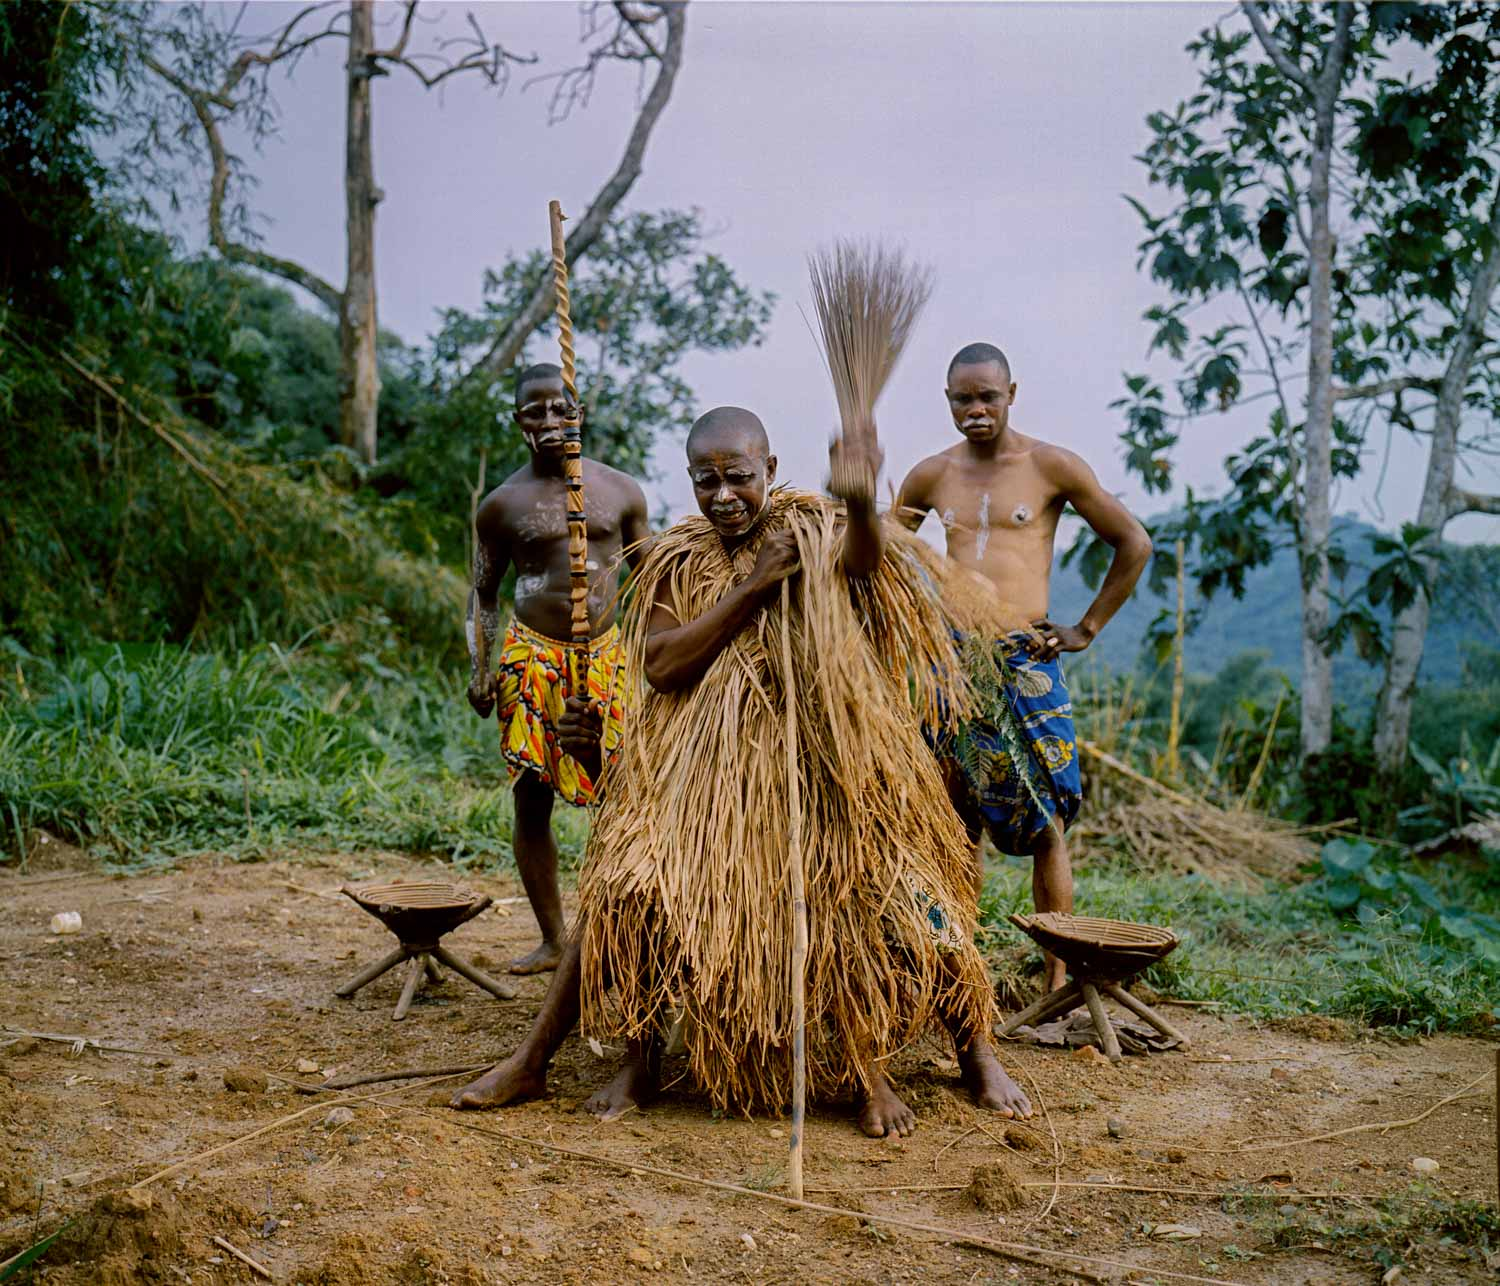 A traditional ceremony takes place outside the home of Lulingu's King Asani Keka Mbezi. The Raia Mutomboki's members are ethnically part of the Lega tribe, known for its intact traditions and witchcraft. The arrival of colonial Belgian powers and its western missionaries wiped out most traditions in Congo. The remoteness of the Lega peoples, however, who inhabit the jungle areas in the east, allowed for the survival of their traditions.Dec., 2013. Lulingu, South Kivu, Democratic Republic of the Congo.